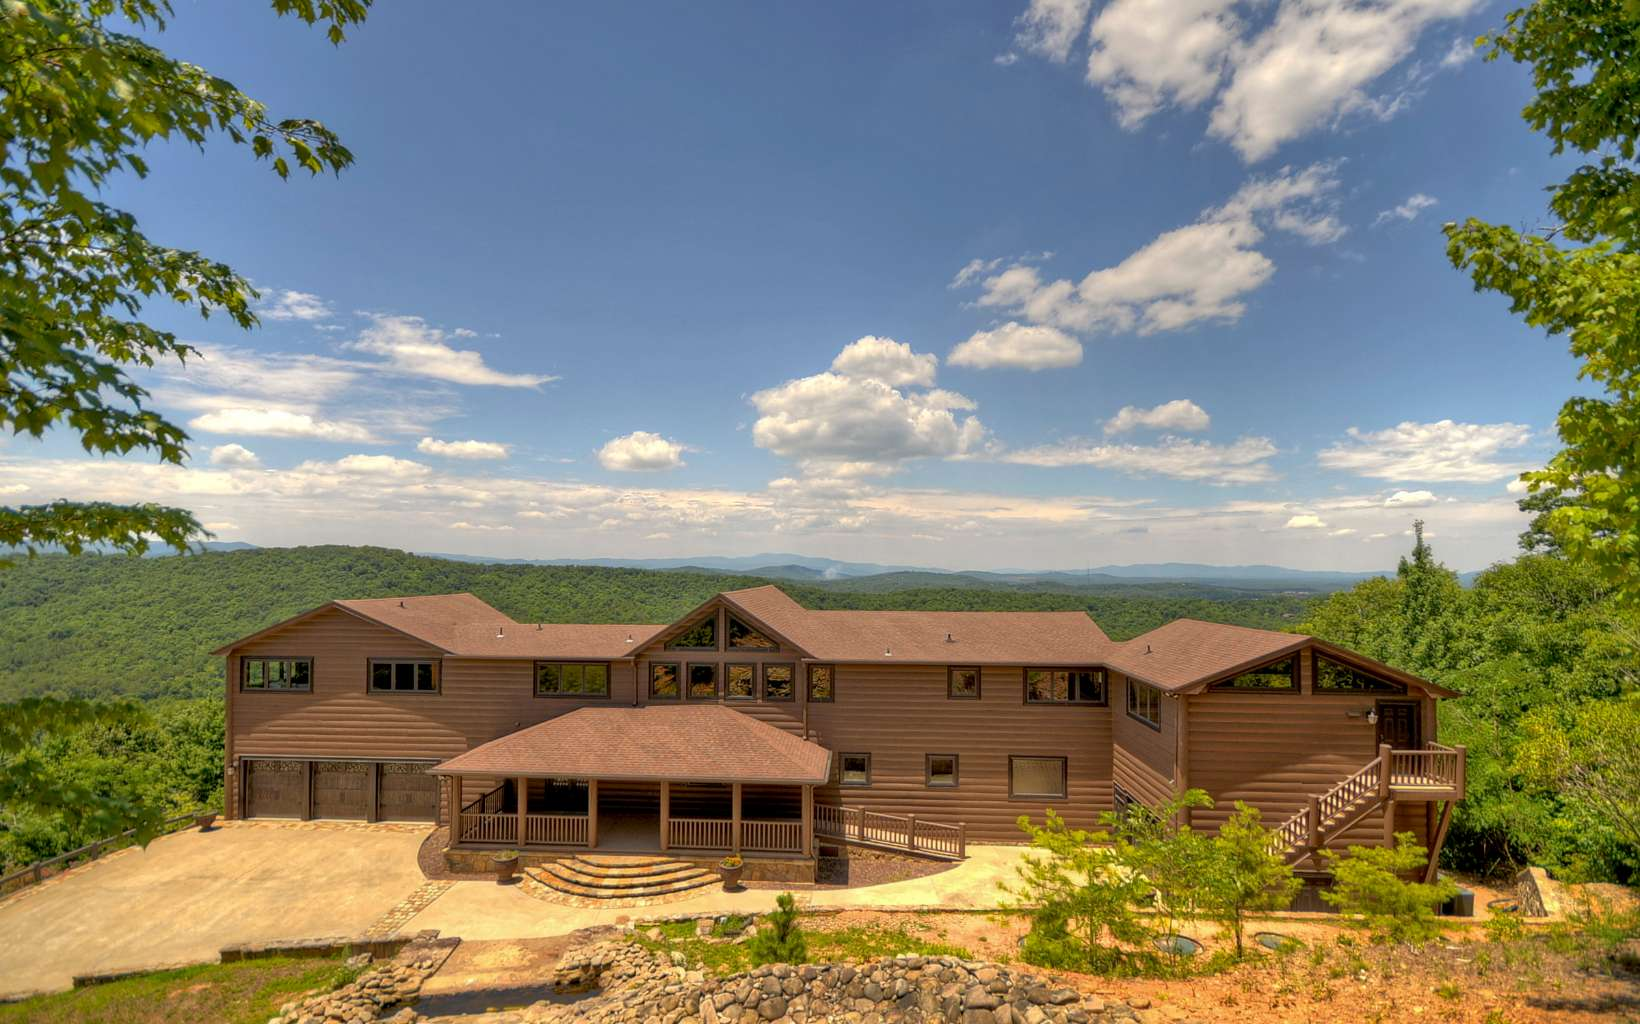 531 deer crest heights blue ridge 30513 harry norman